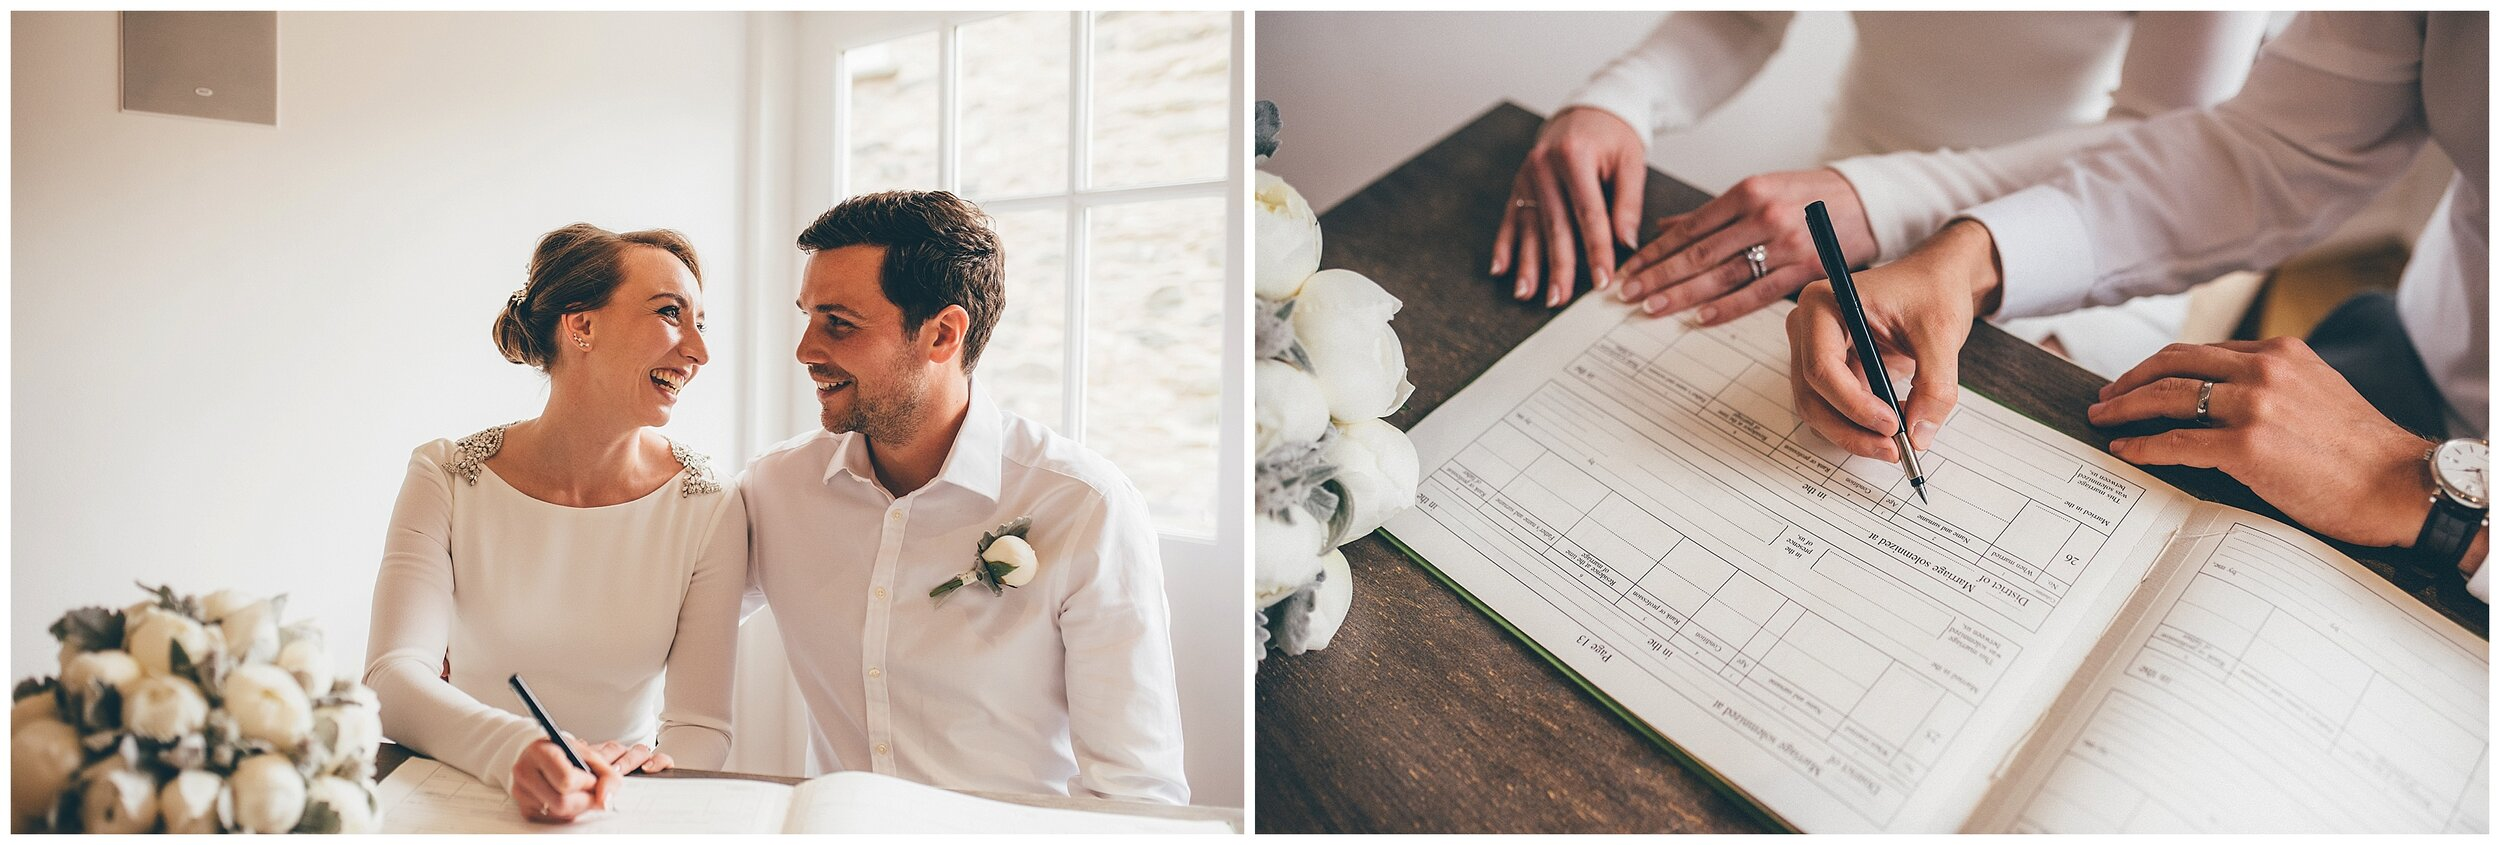 Bride and groom sign their wedding register at Silverholme Manor at the Graythwaite Estate in the Lake district.